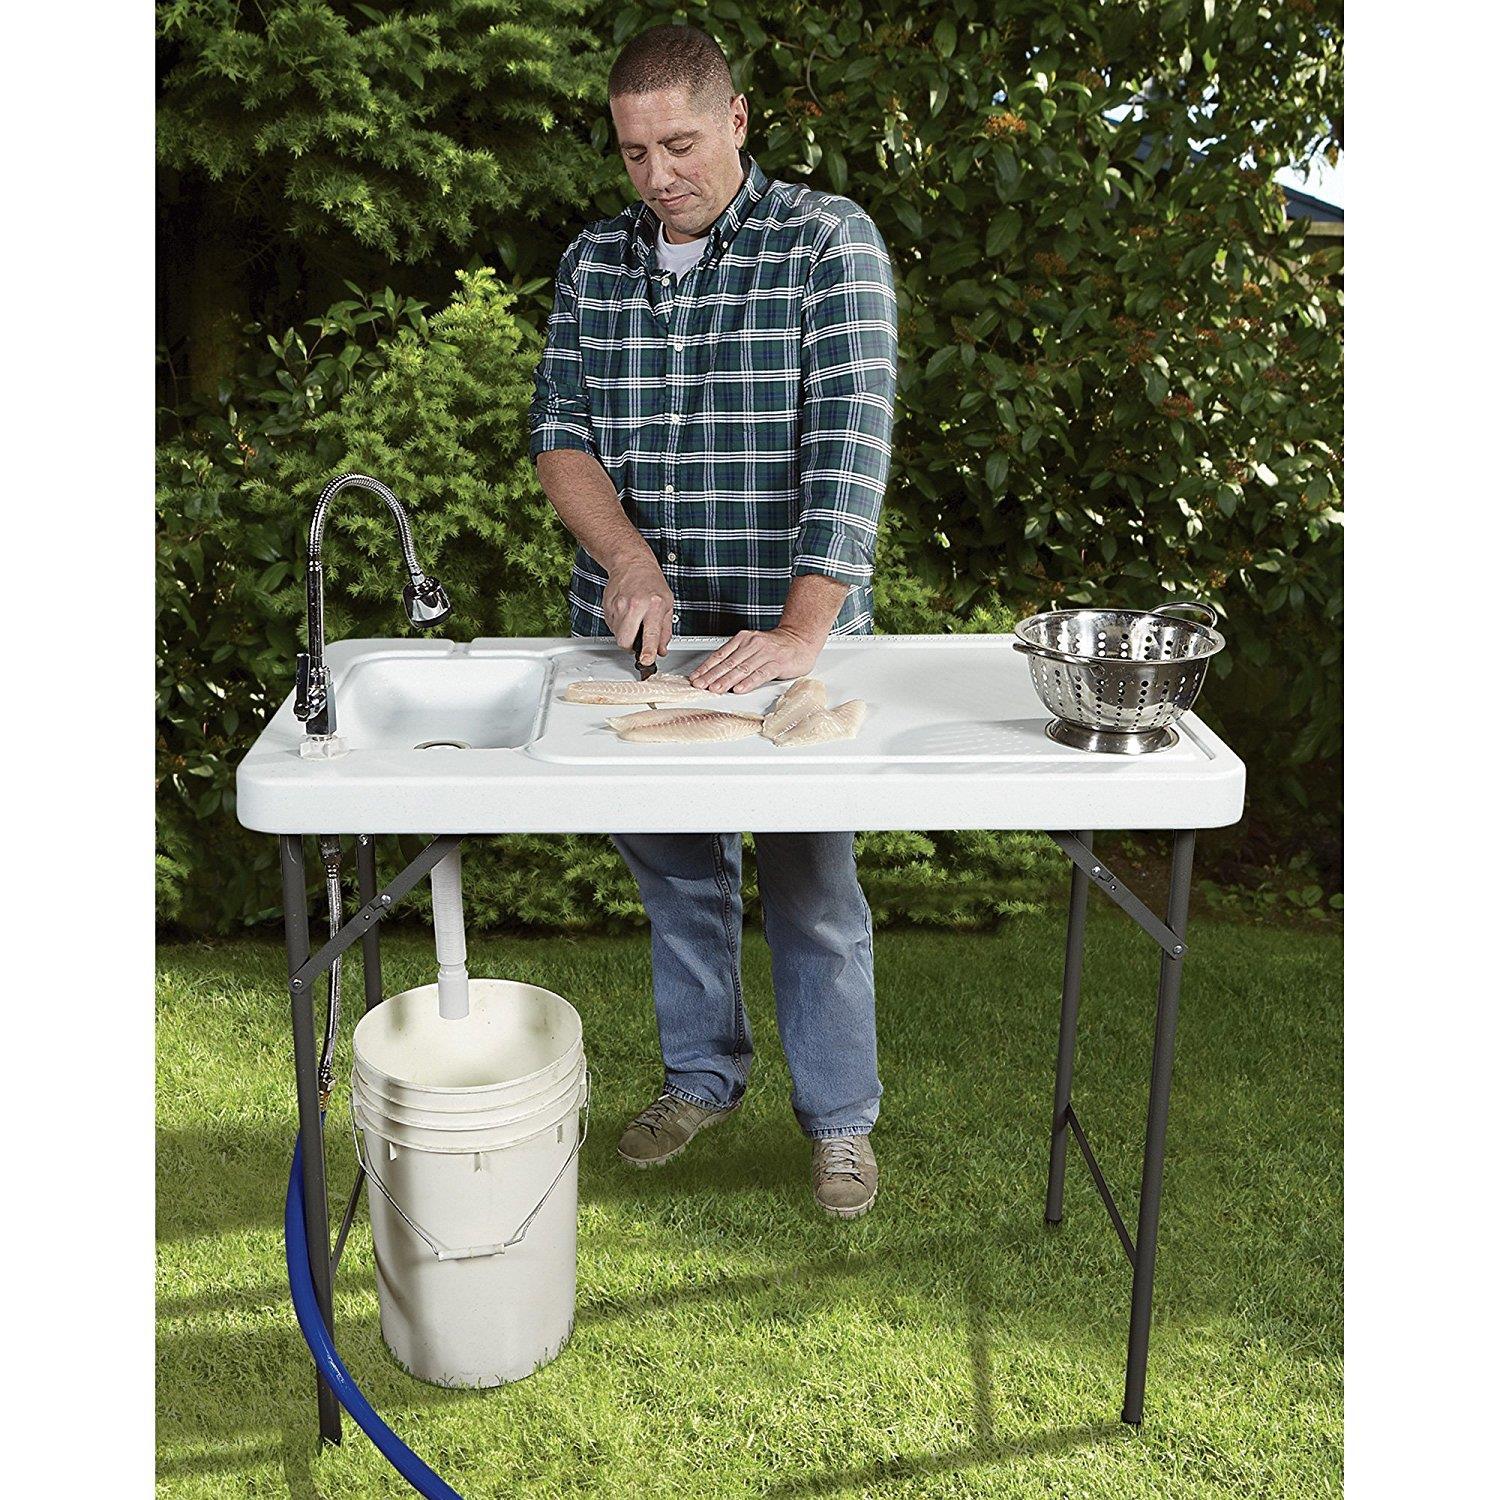 ktaxon portable folding table fish fillet hunting cleaning cutting camping picnic outdoor gardening table with sink faucet walmart com